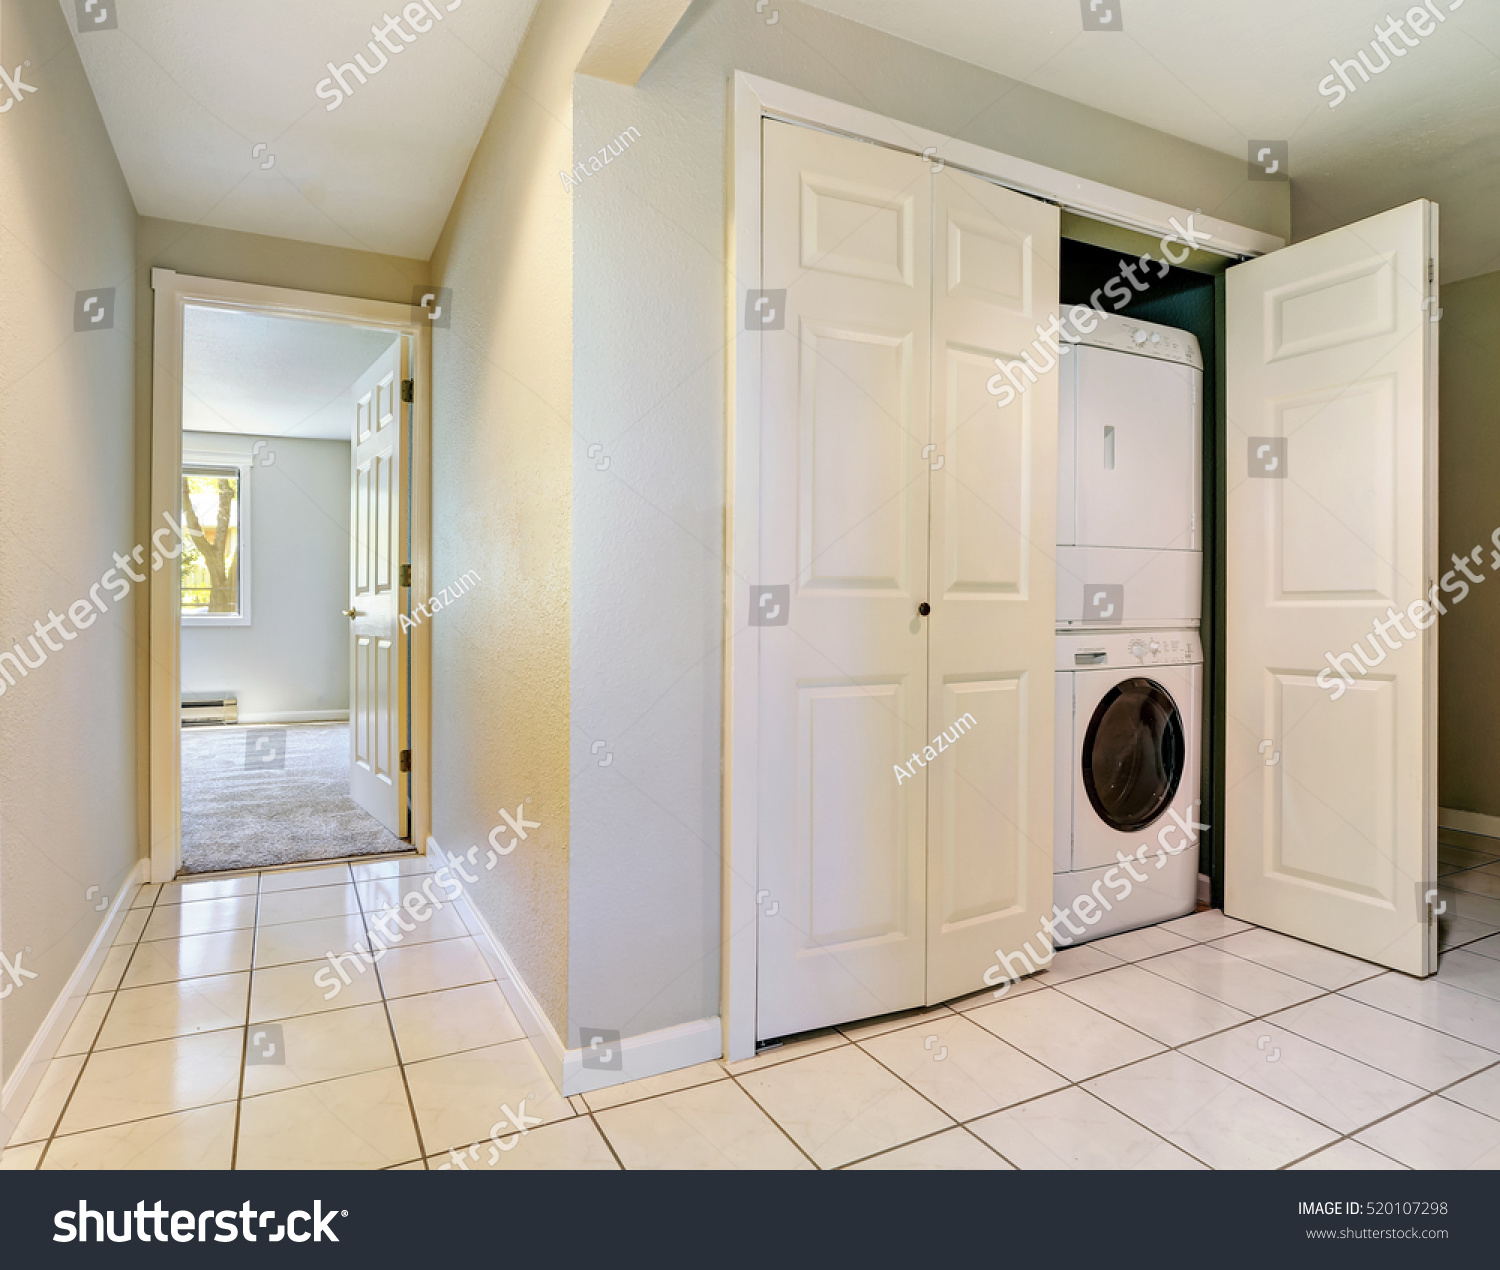 Hallway Interior With Tile Floor And Built In Laundry Appliances